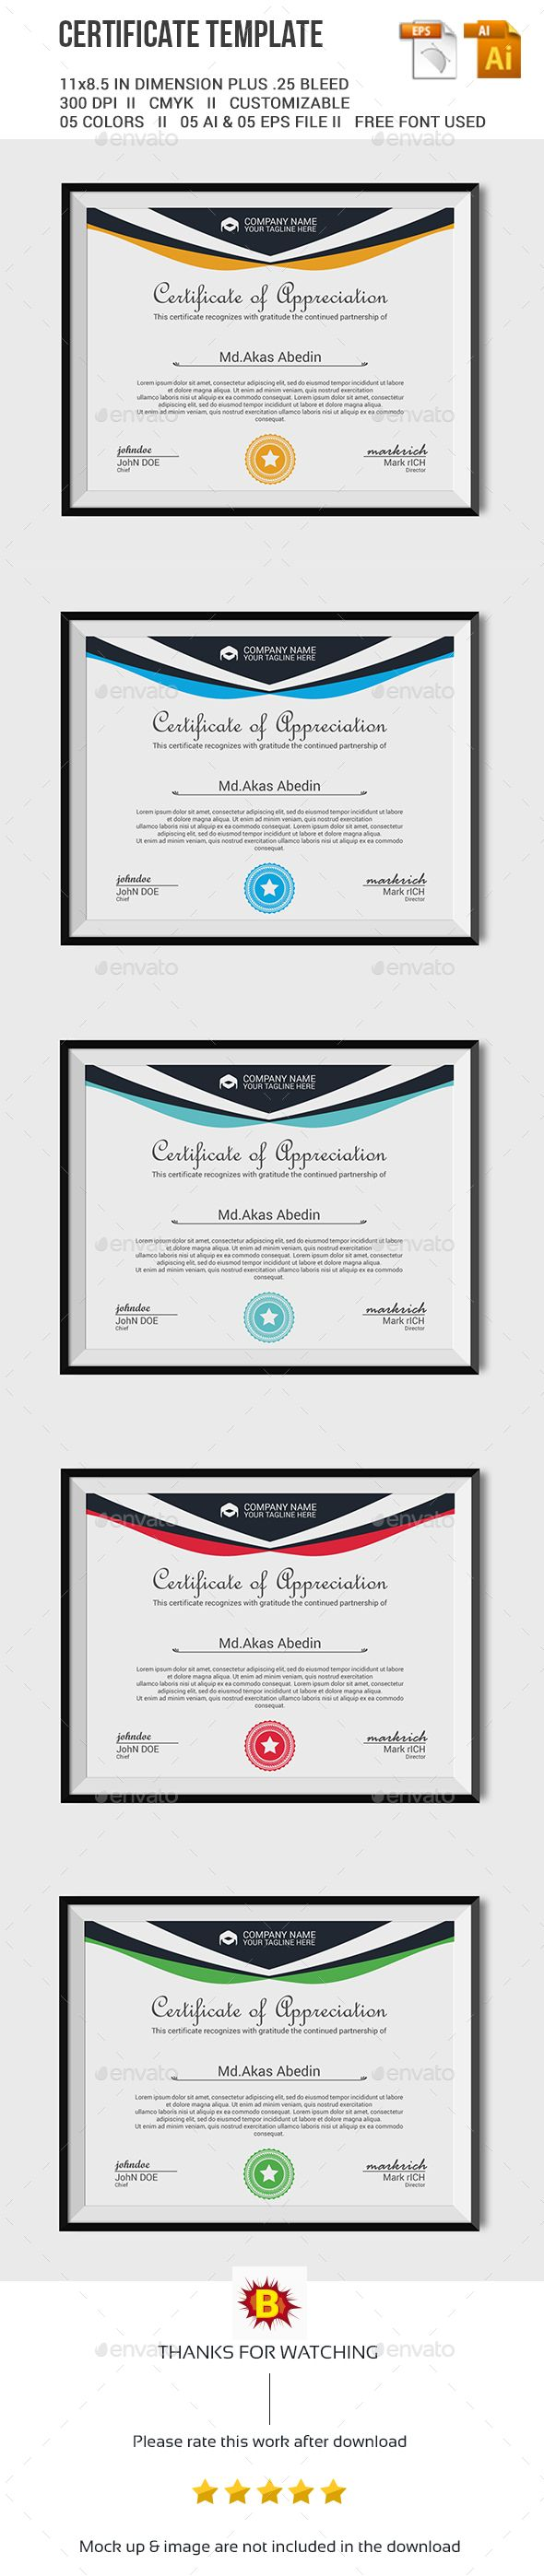 Certificate Template - Certificate Template Vector EPS, Vector AI. Download here: http://graphicriver.net/item/certificate-template/13539951?s_rank=127&ref=yinkira